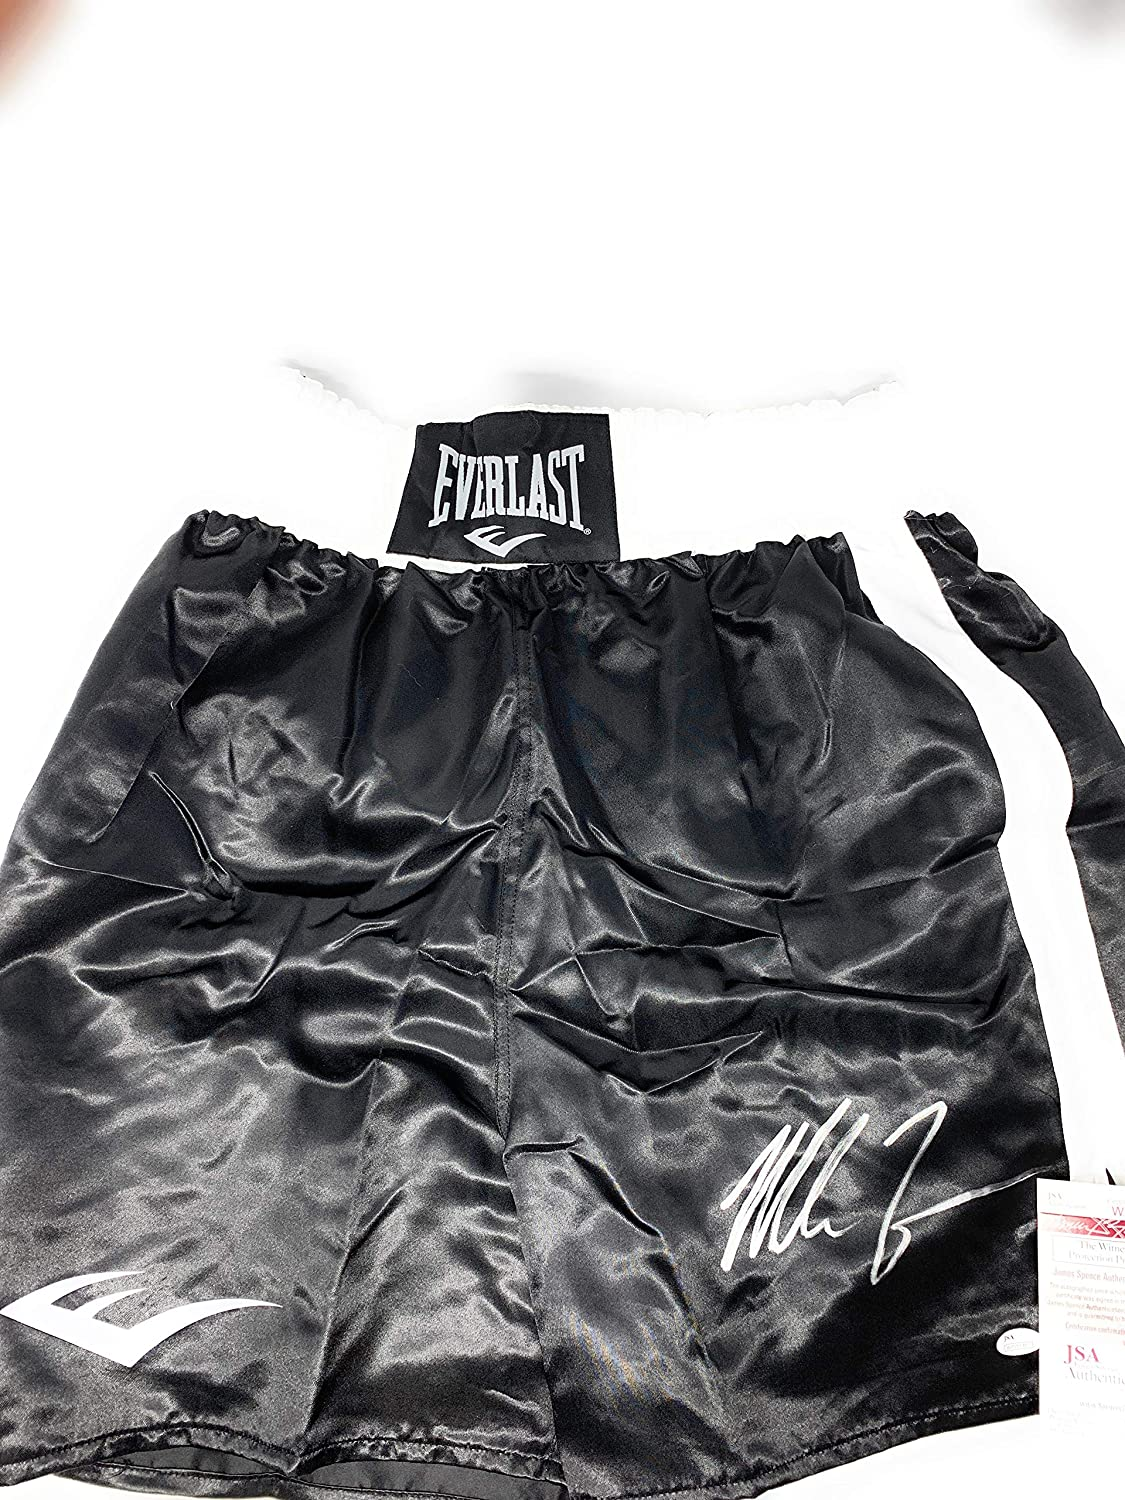 Mike Tyson Signed Autograph Boxing Trunks JSA Witnessed Certified